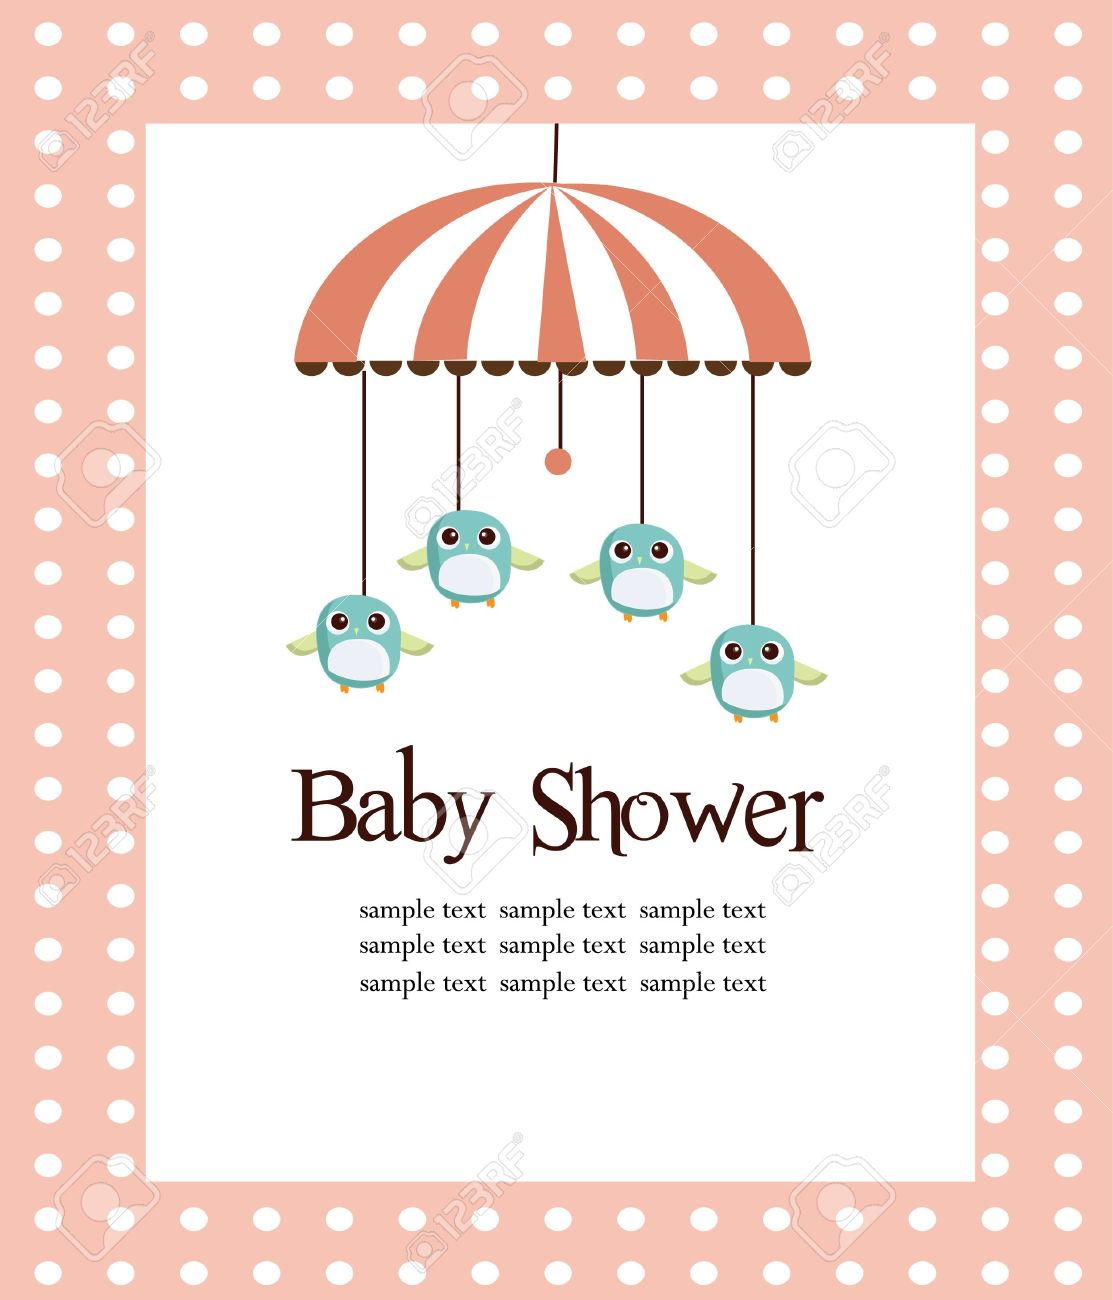 Baby shower card for girls illustration Stock Vector - 6798209